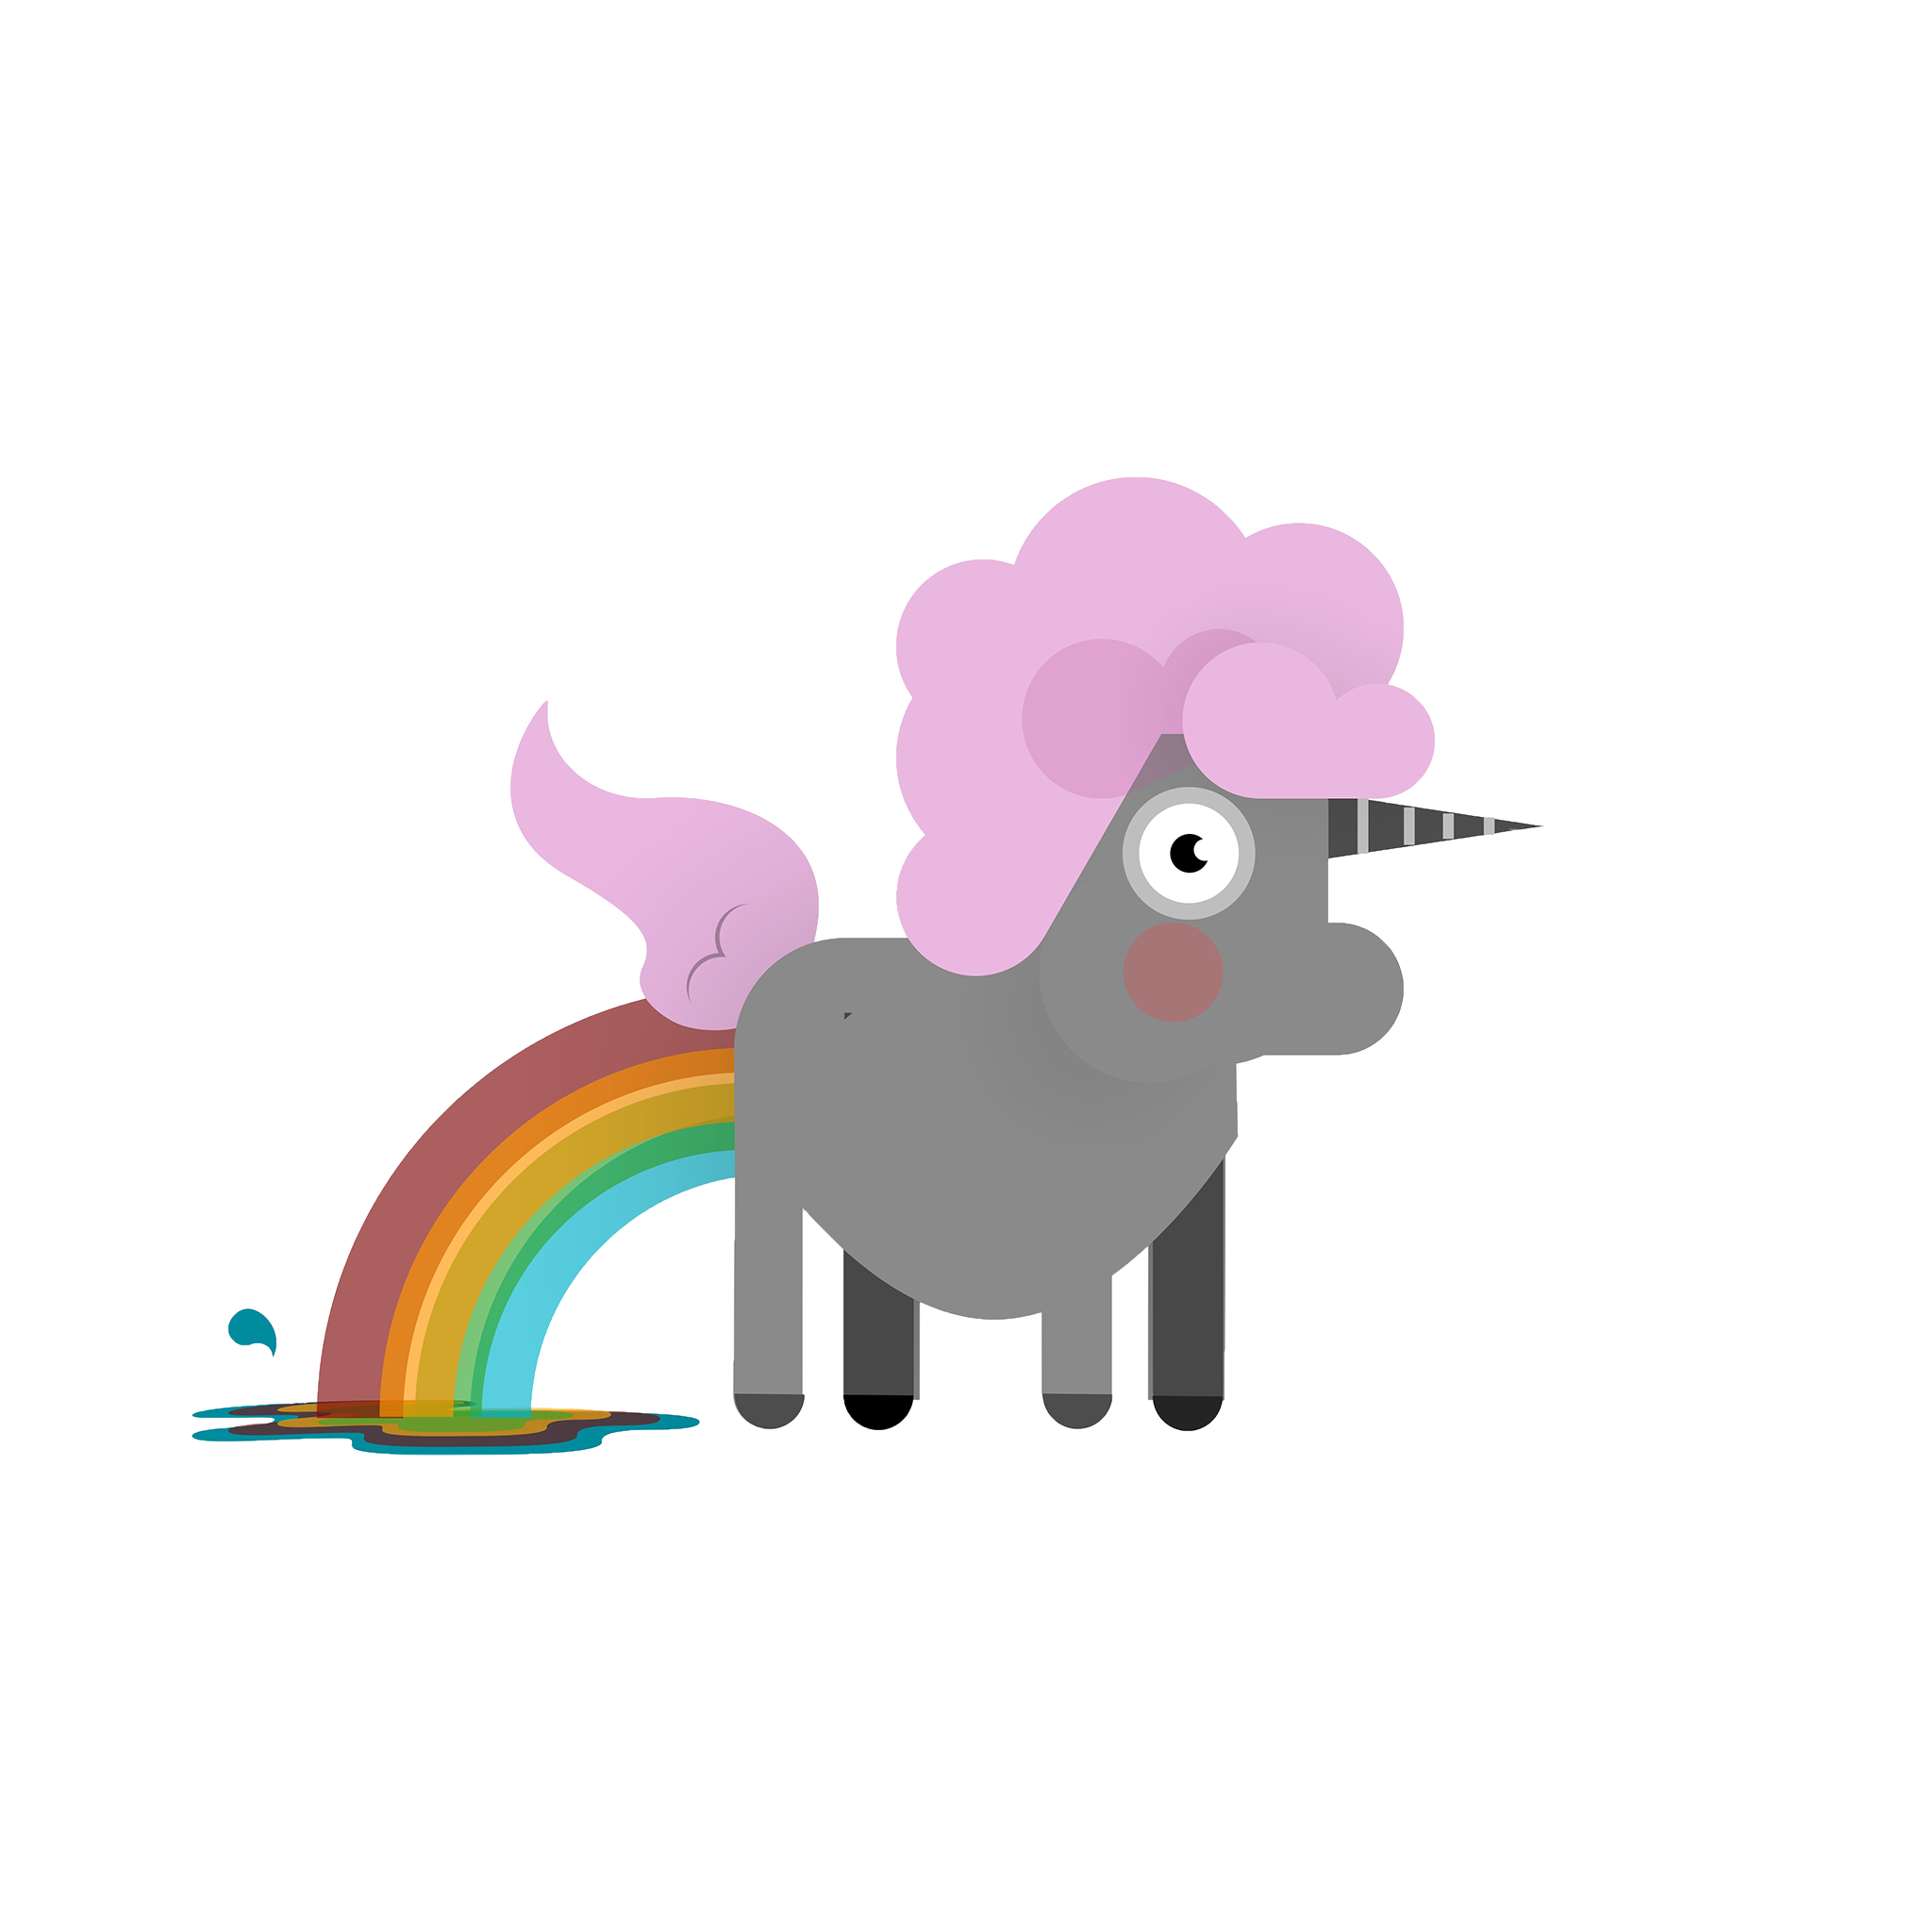 Bad Unicorn messages sticker-10